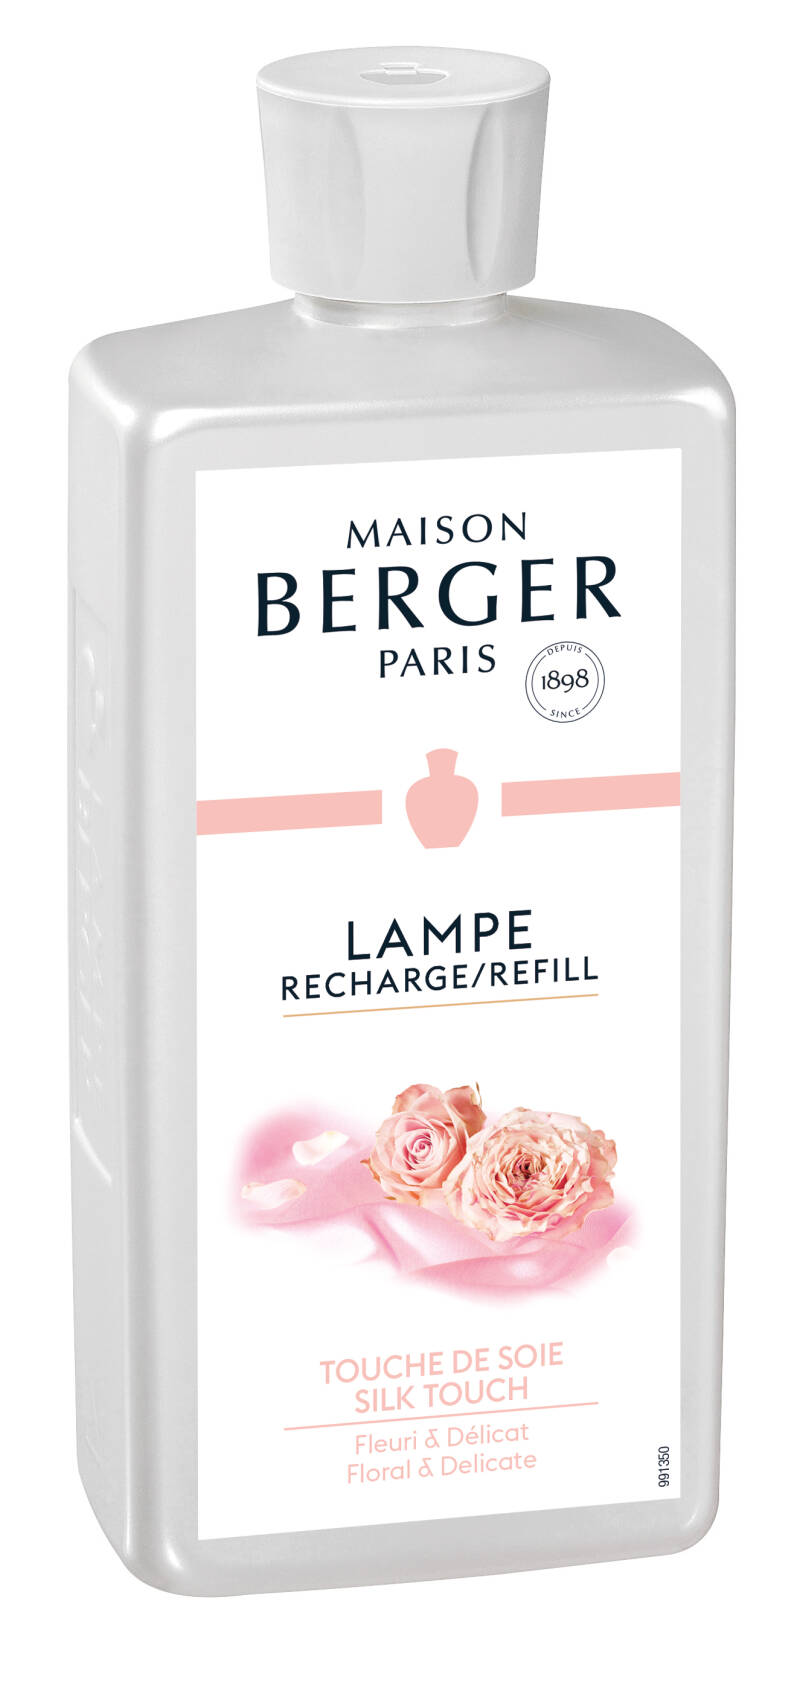 Lampe Berger navulling Silk Touch 500 ml 115181